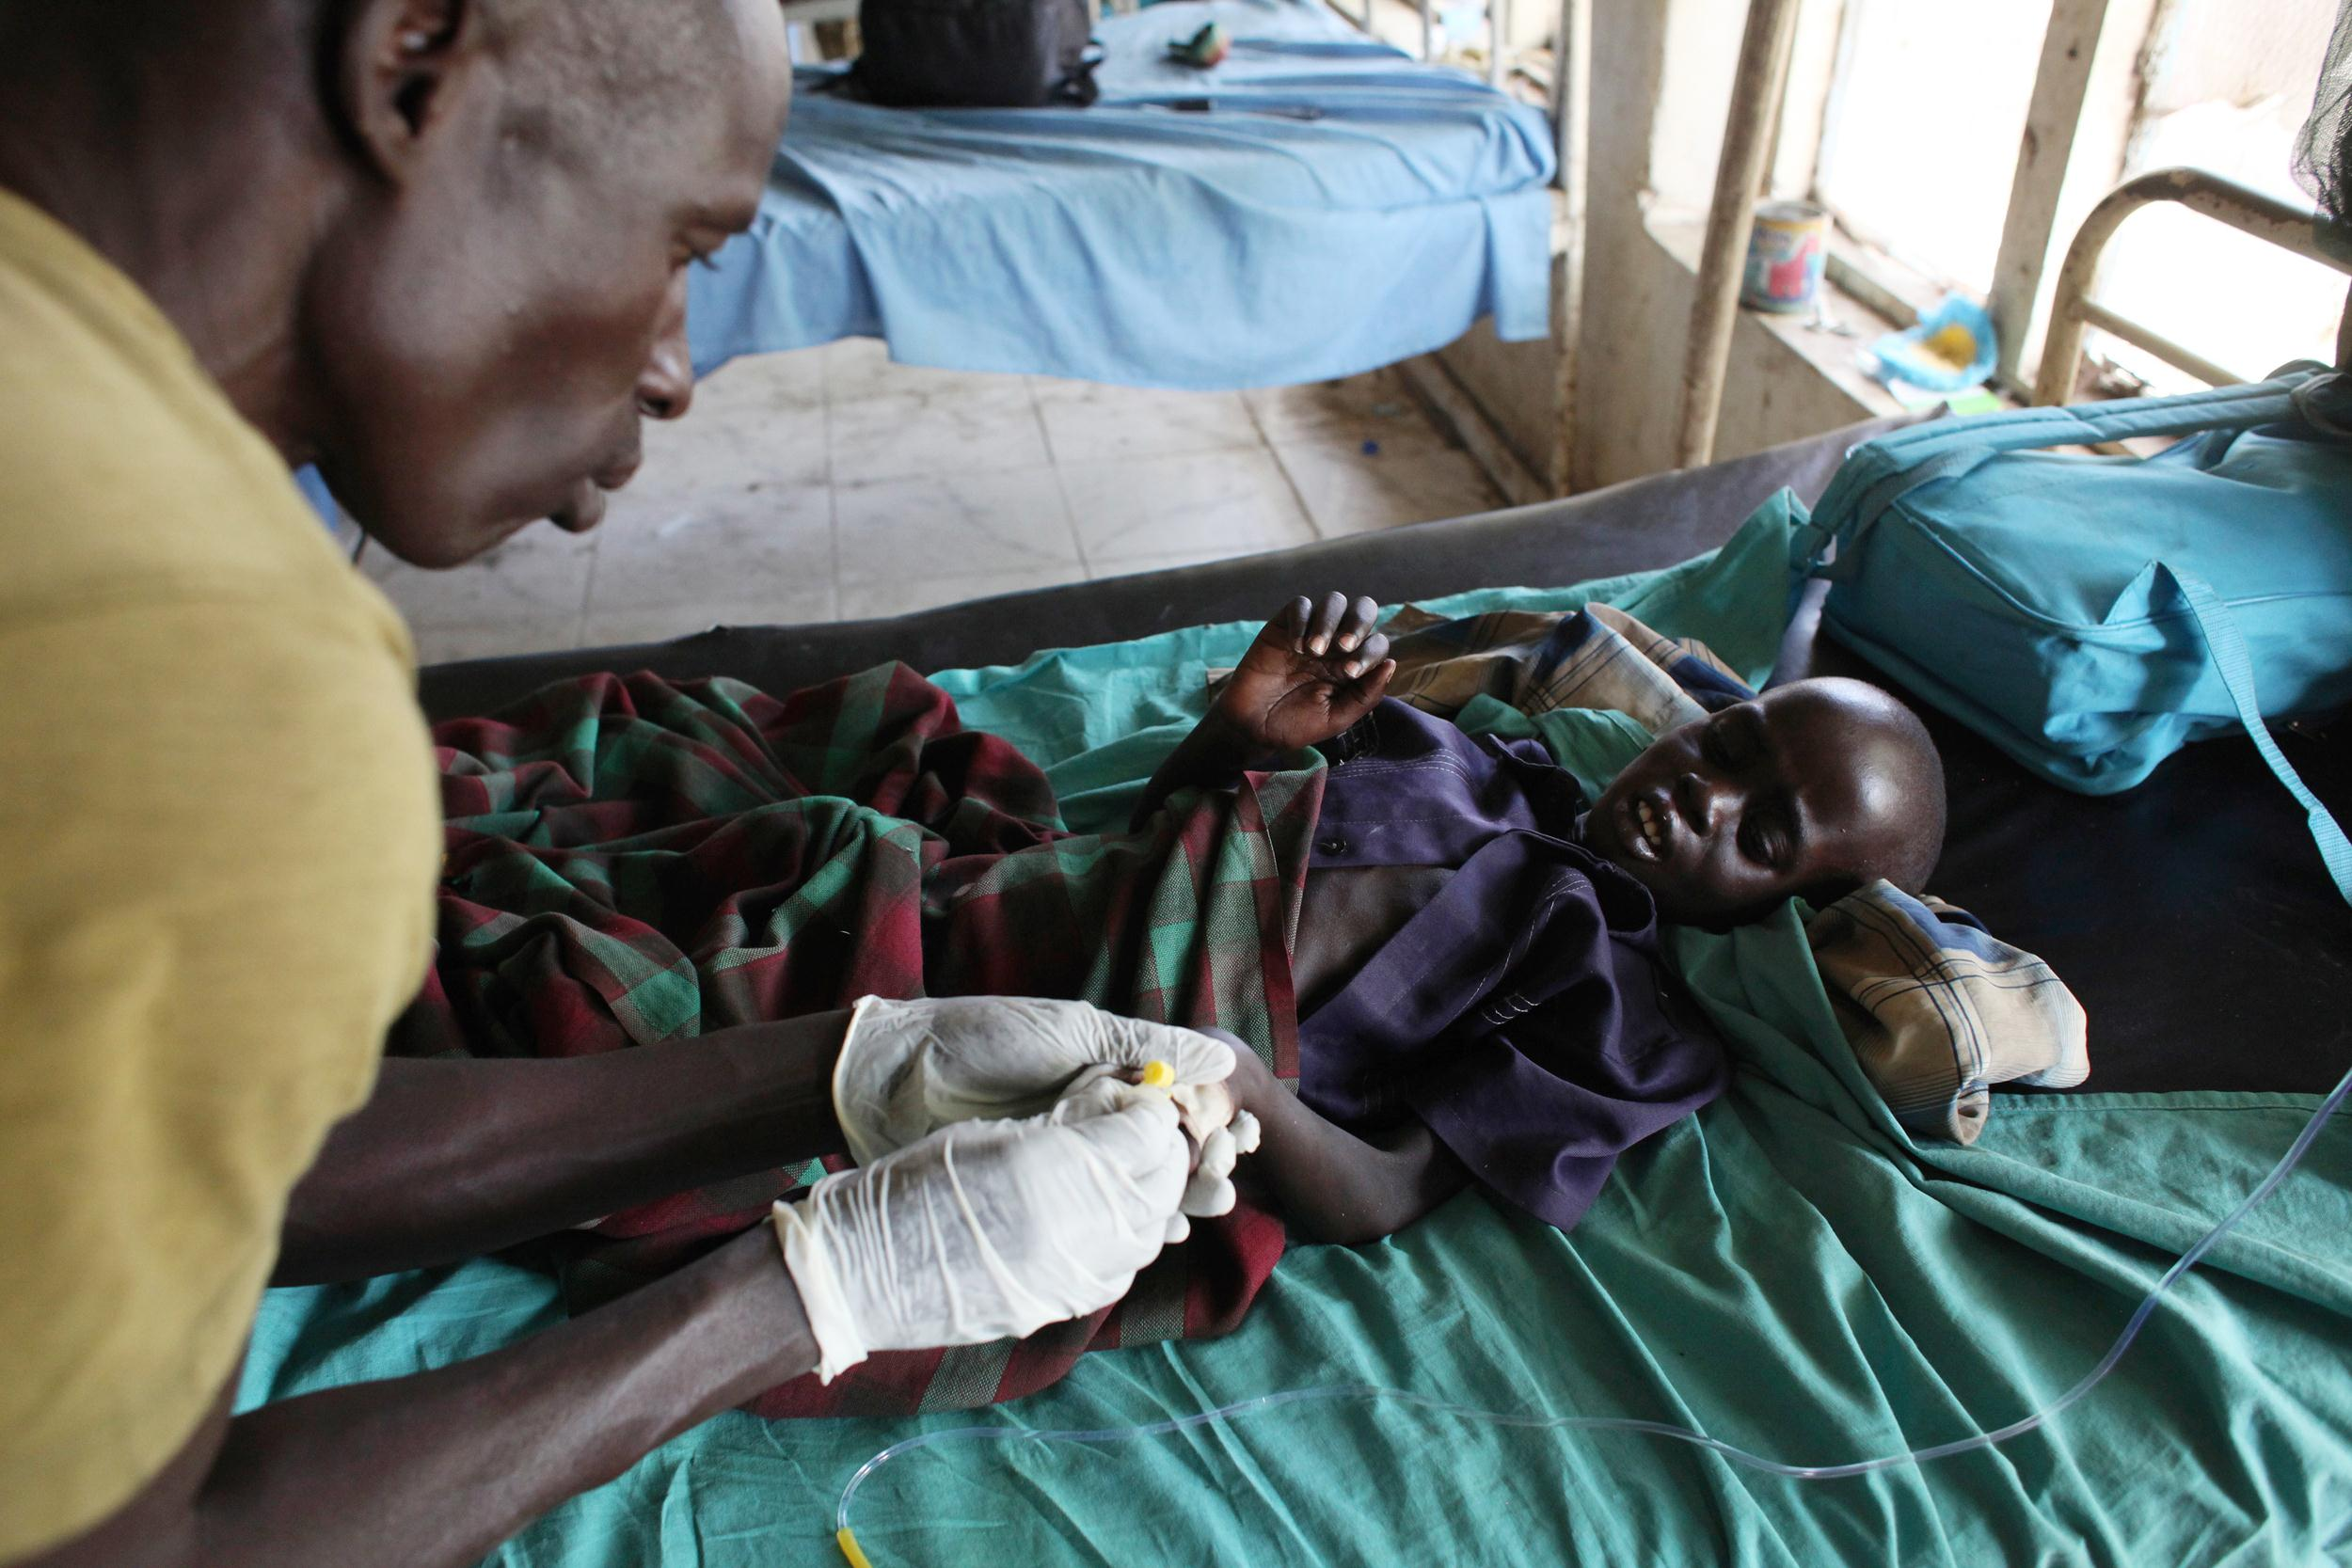 Image: An UPDF medic takes care of a malnourished child with malaria